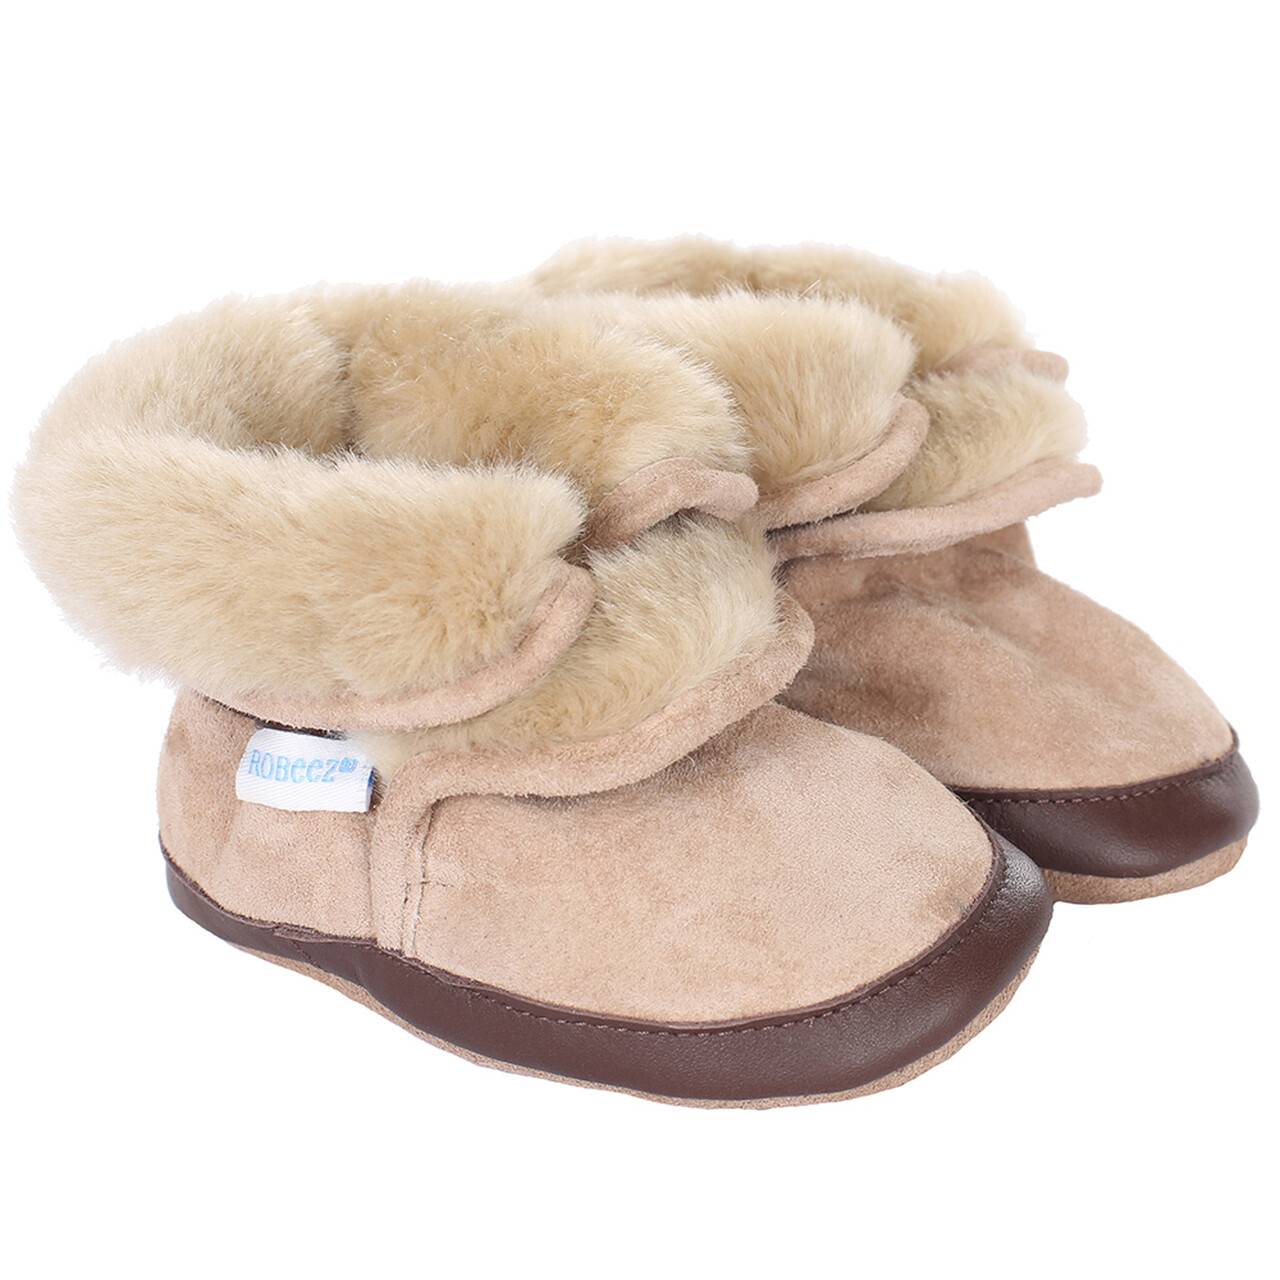 Robeez Cozy ankle bootie taupe 6-12